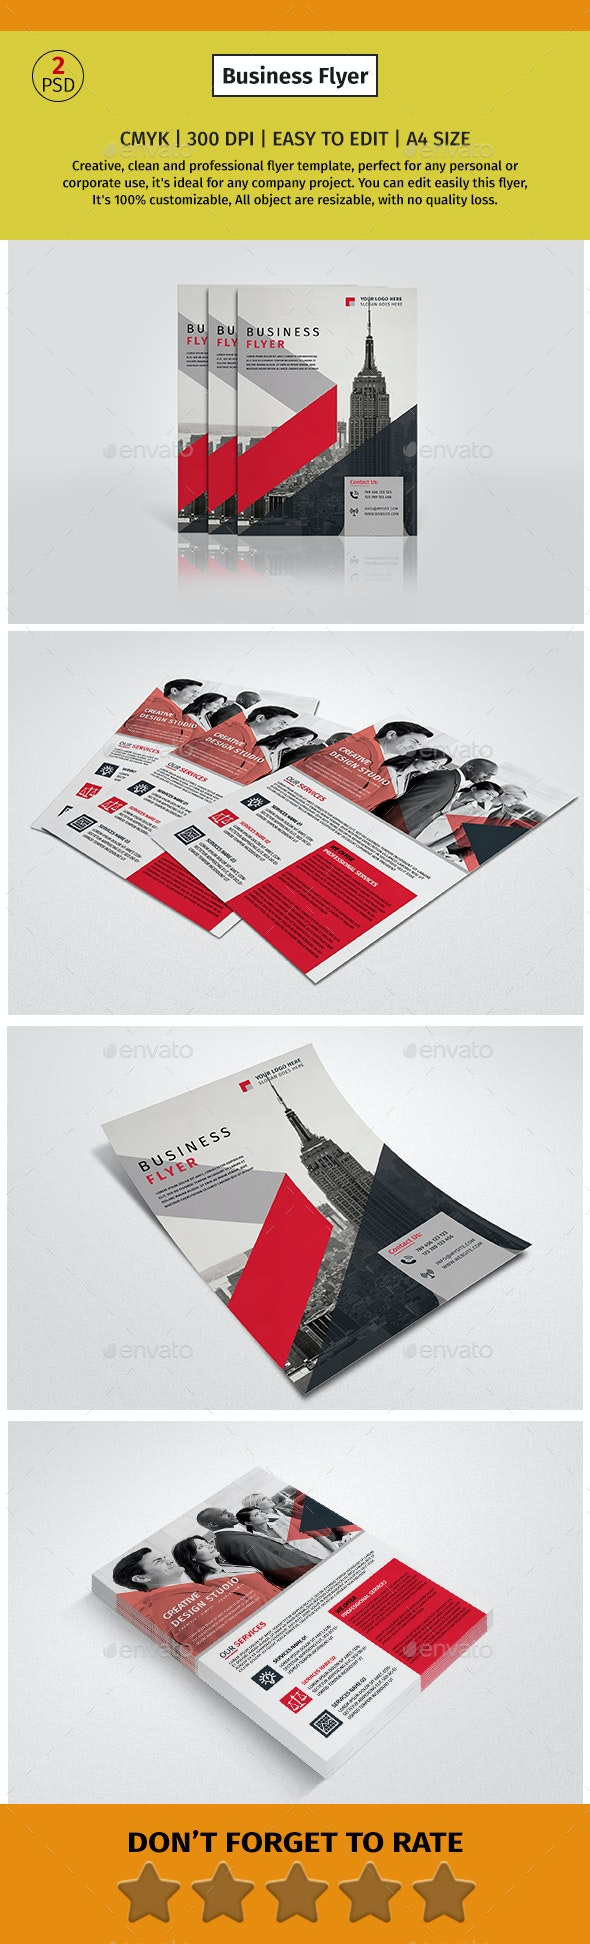 A4 Corporate Business Flyer #7 - Corporate Flyers